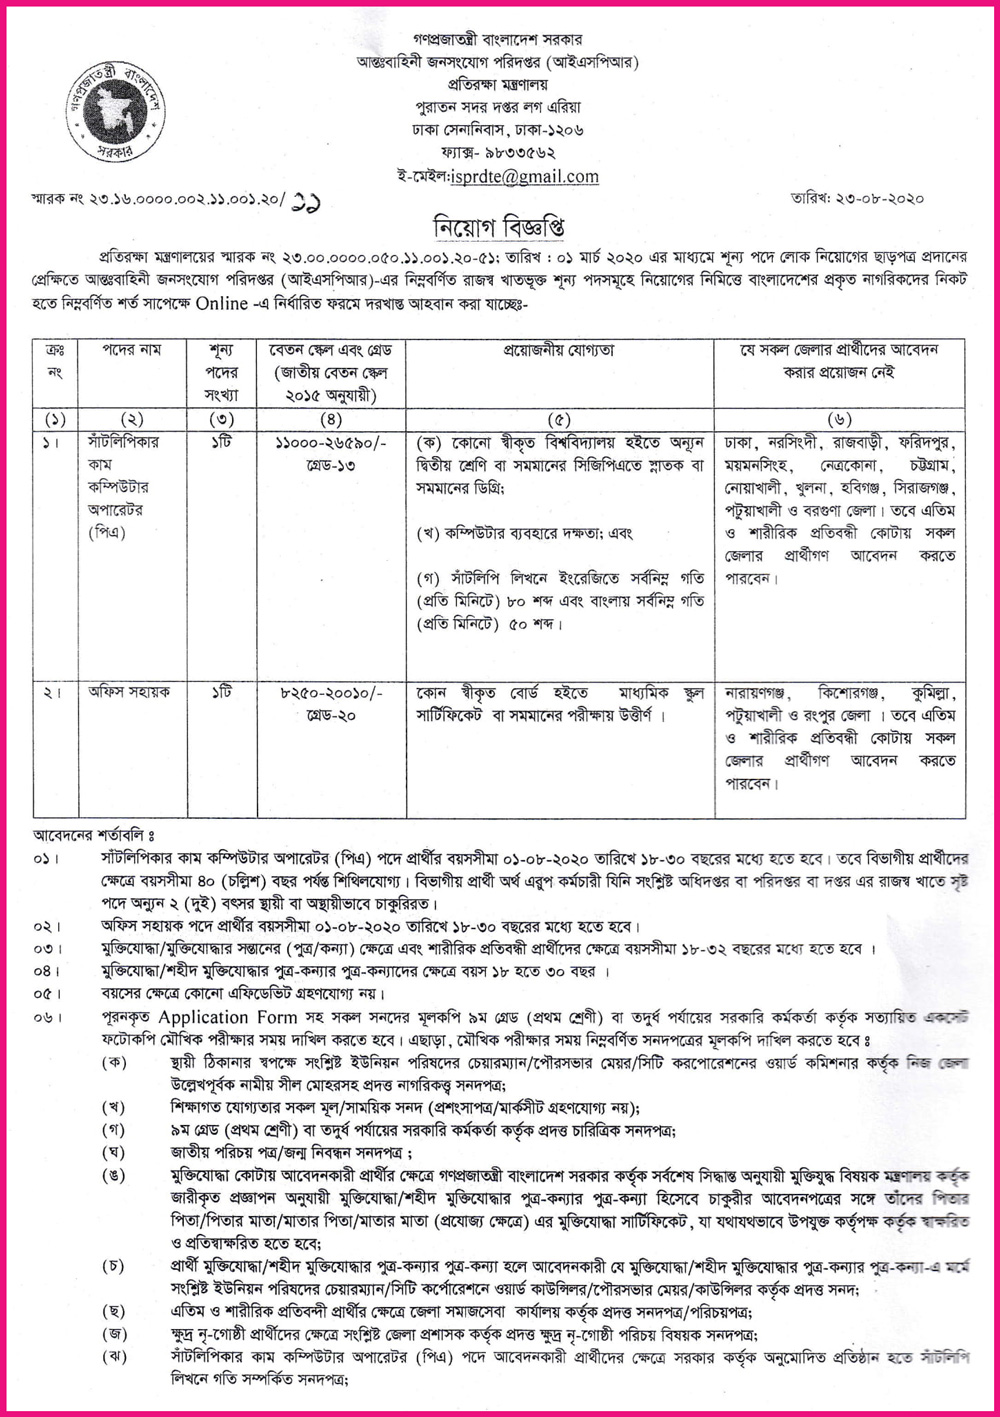 ISPR Job Circular Apply 2020 - ispr gov bd